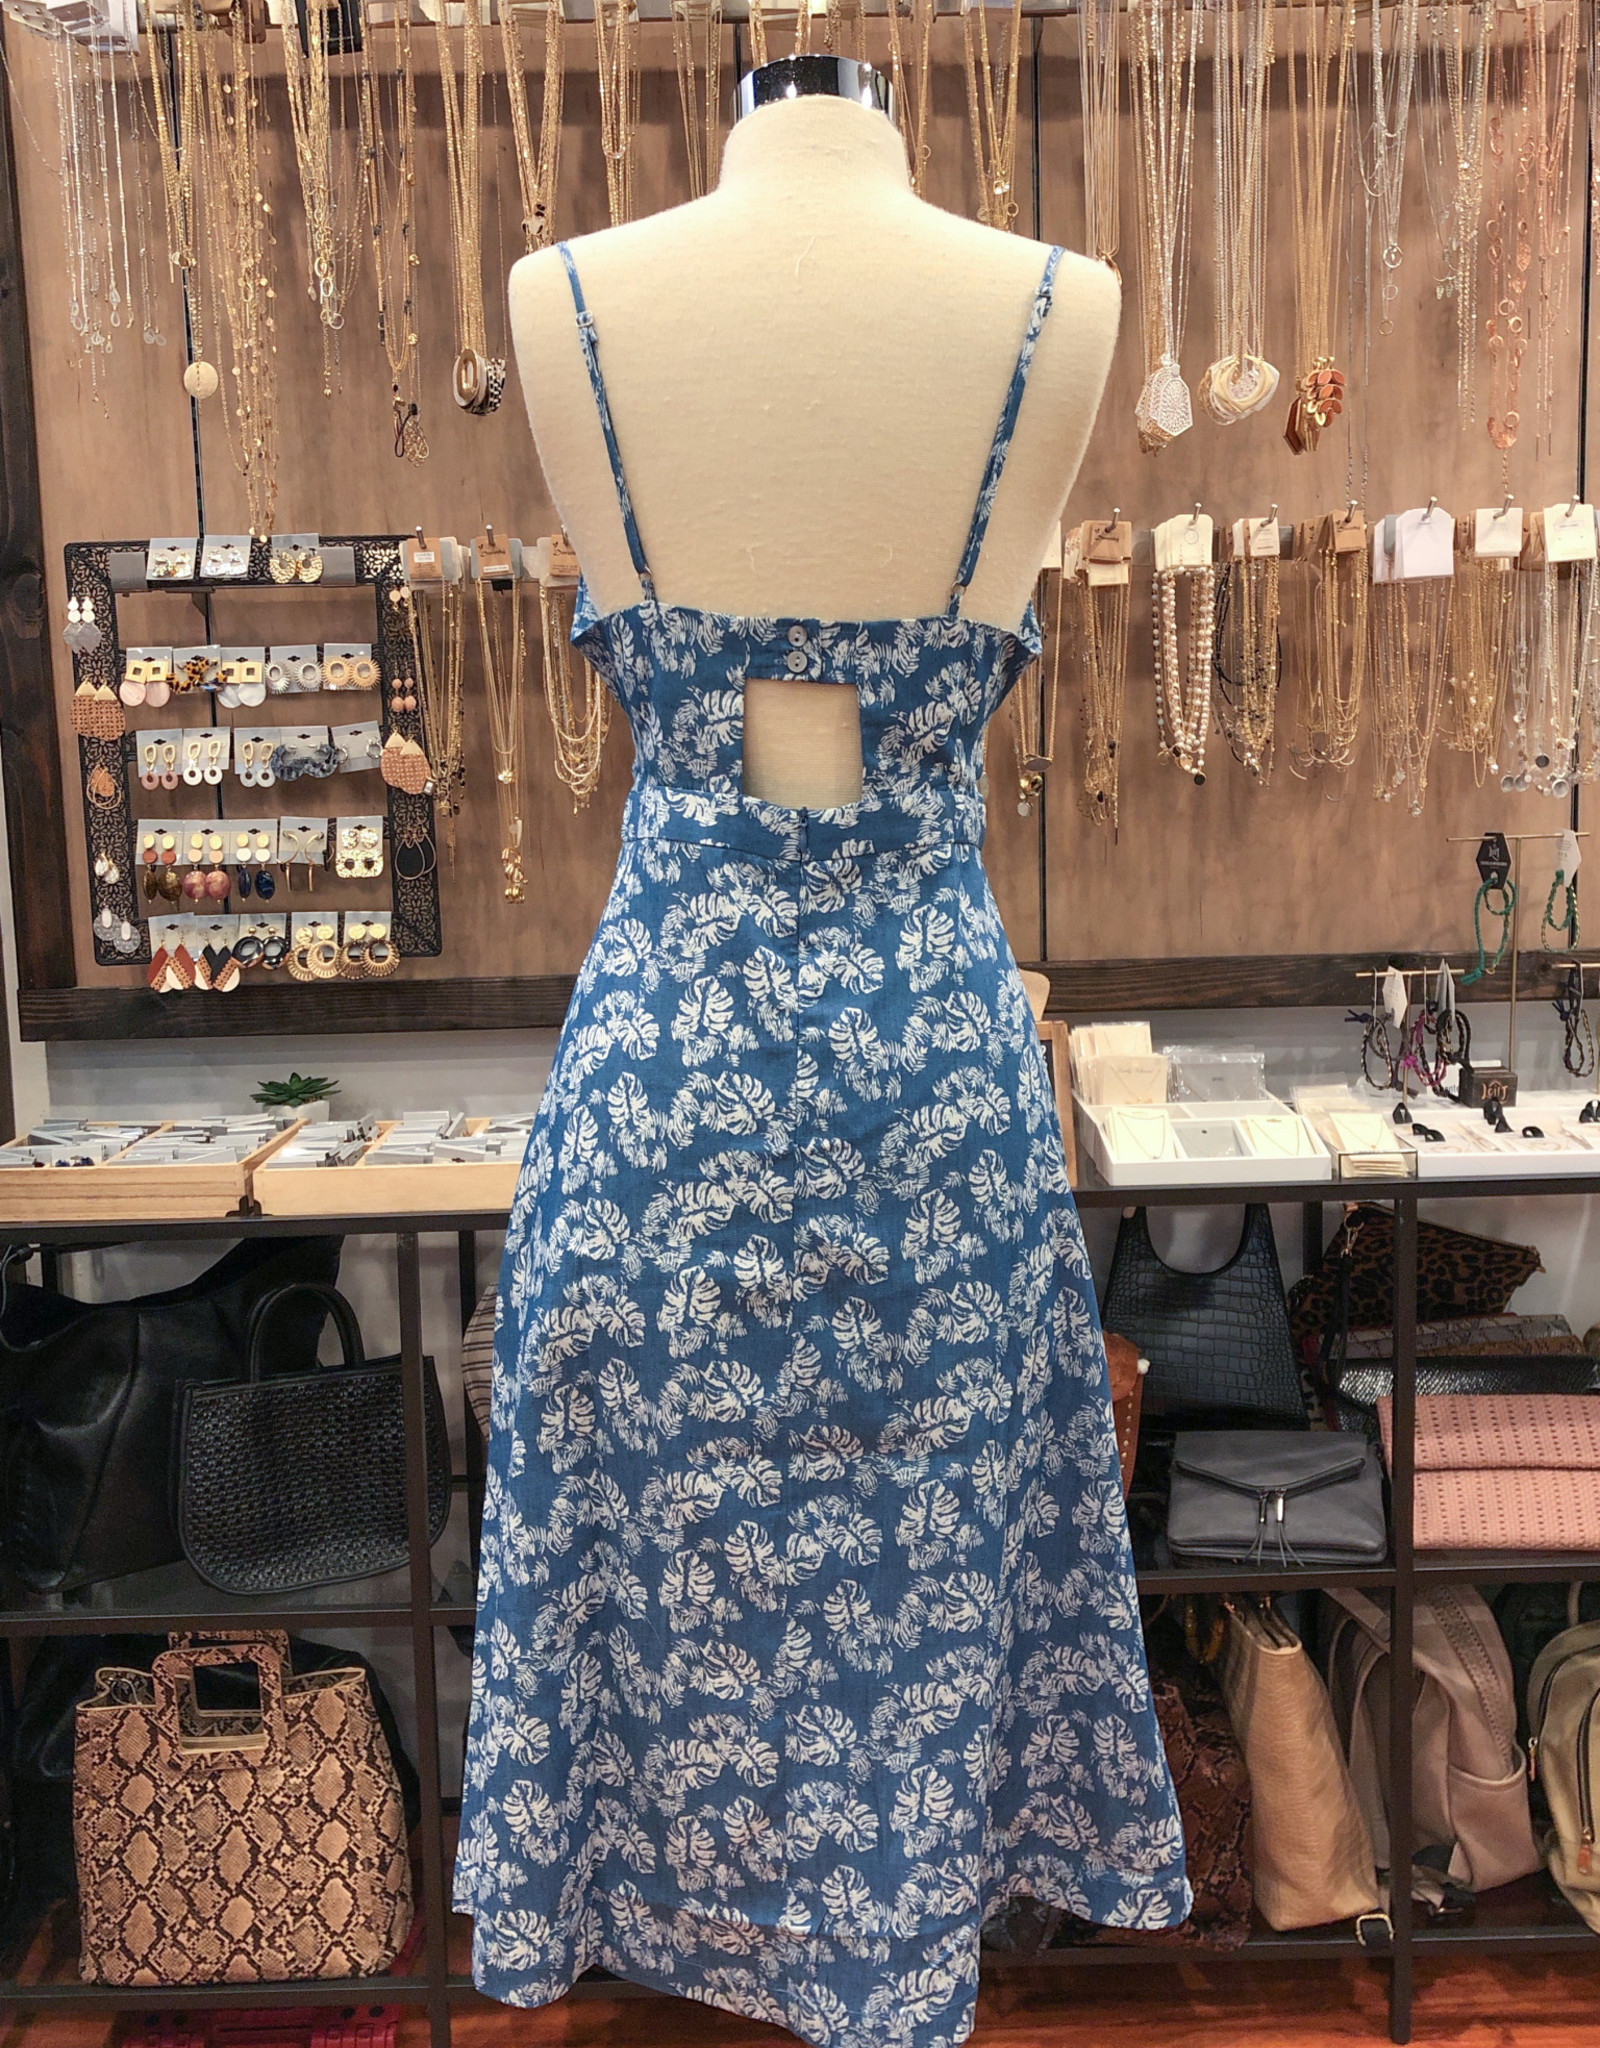 ID7912 FLORAL FRONT TIE DRESS